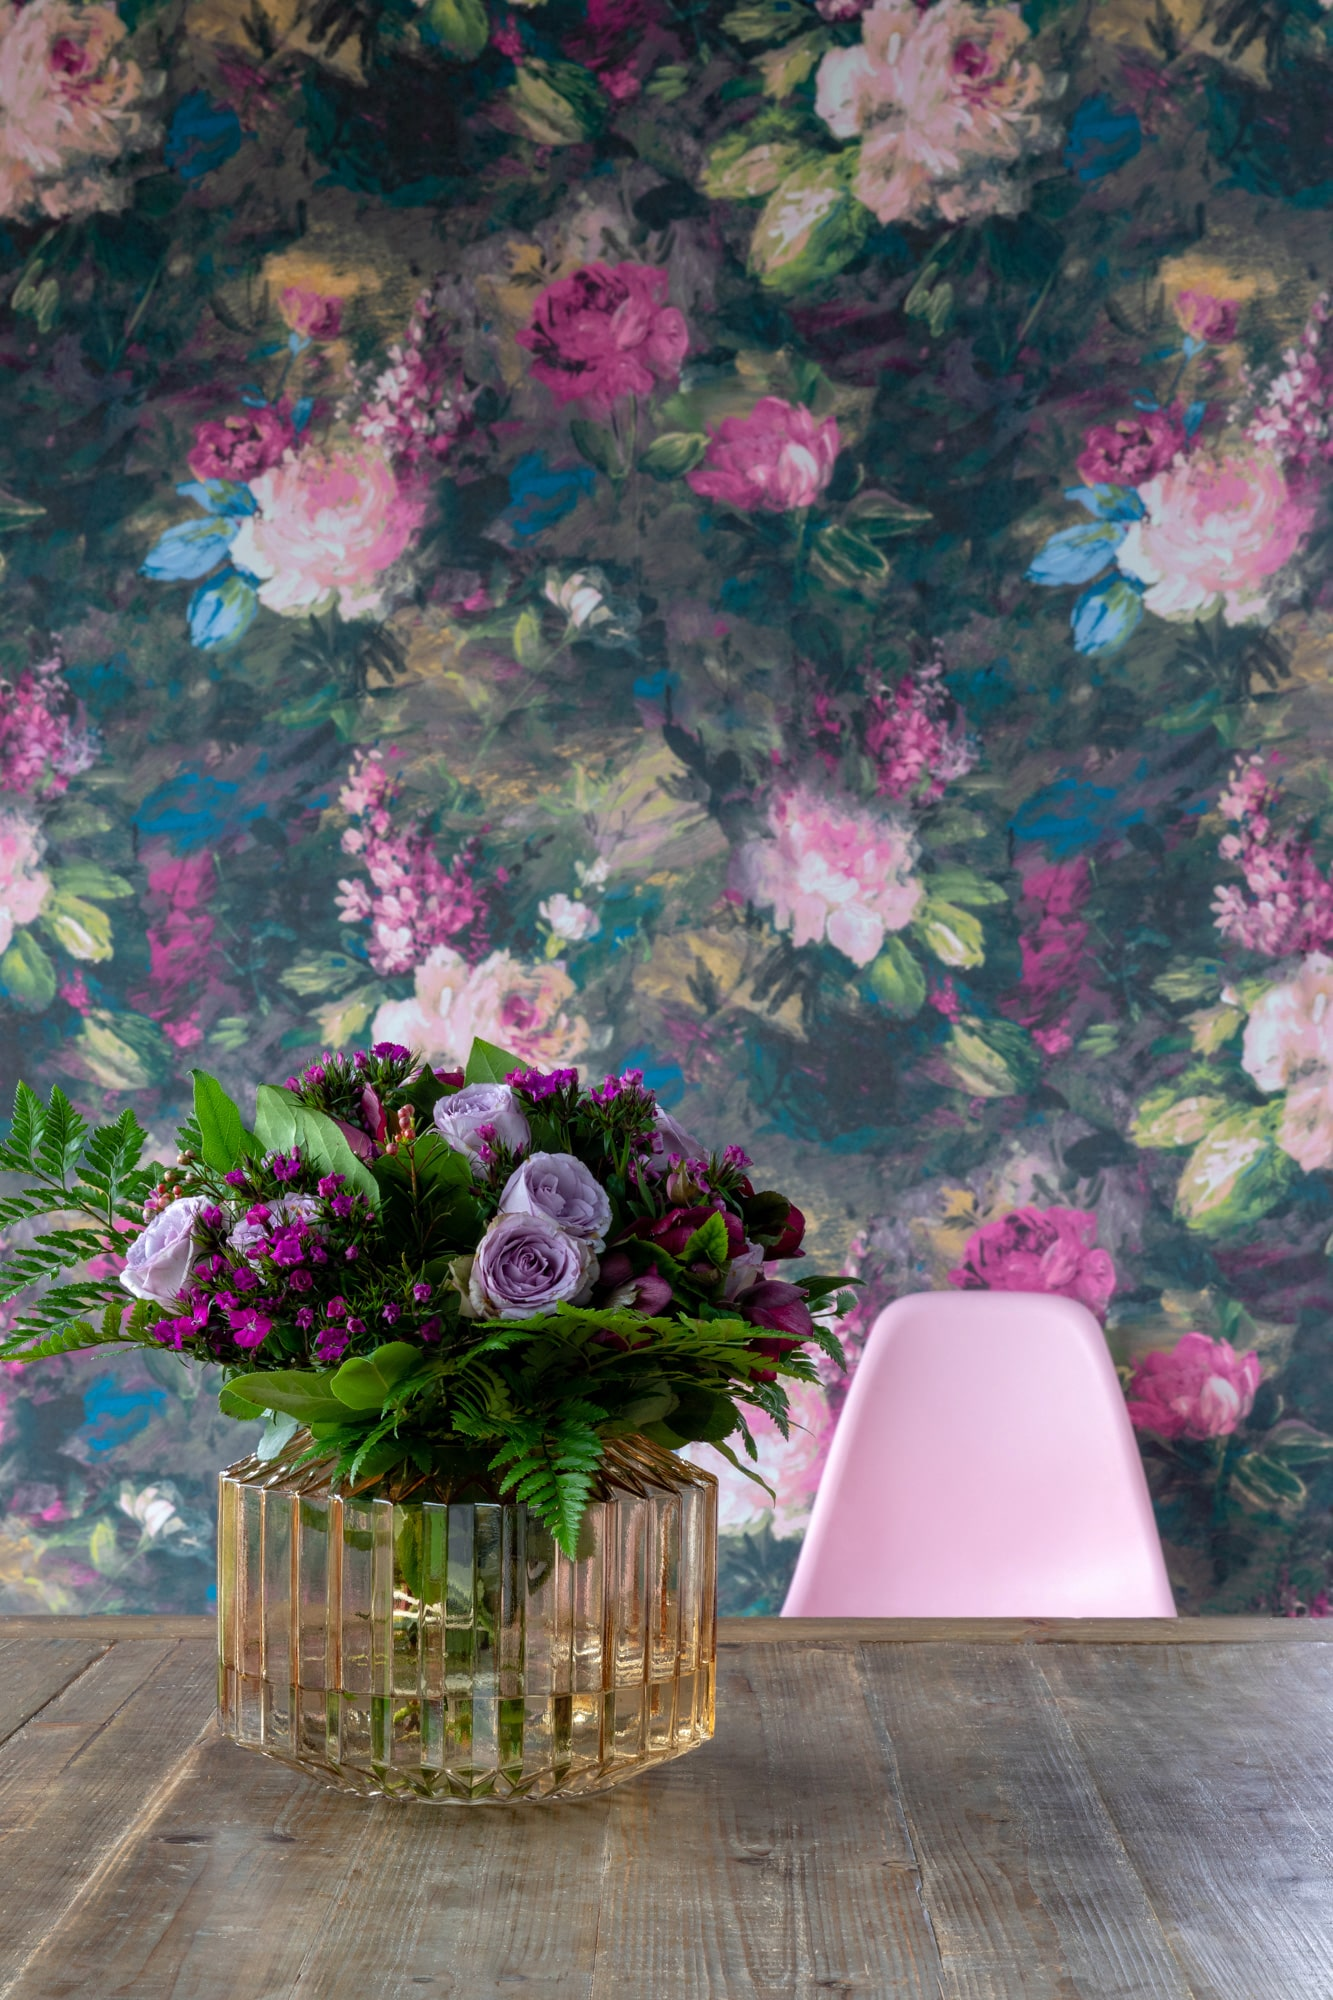 interior detail photo of a vase with flowers, floral wallpaper on the background and a pink chair